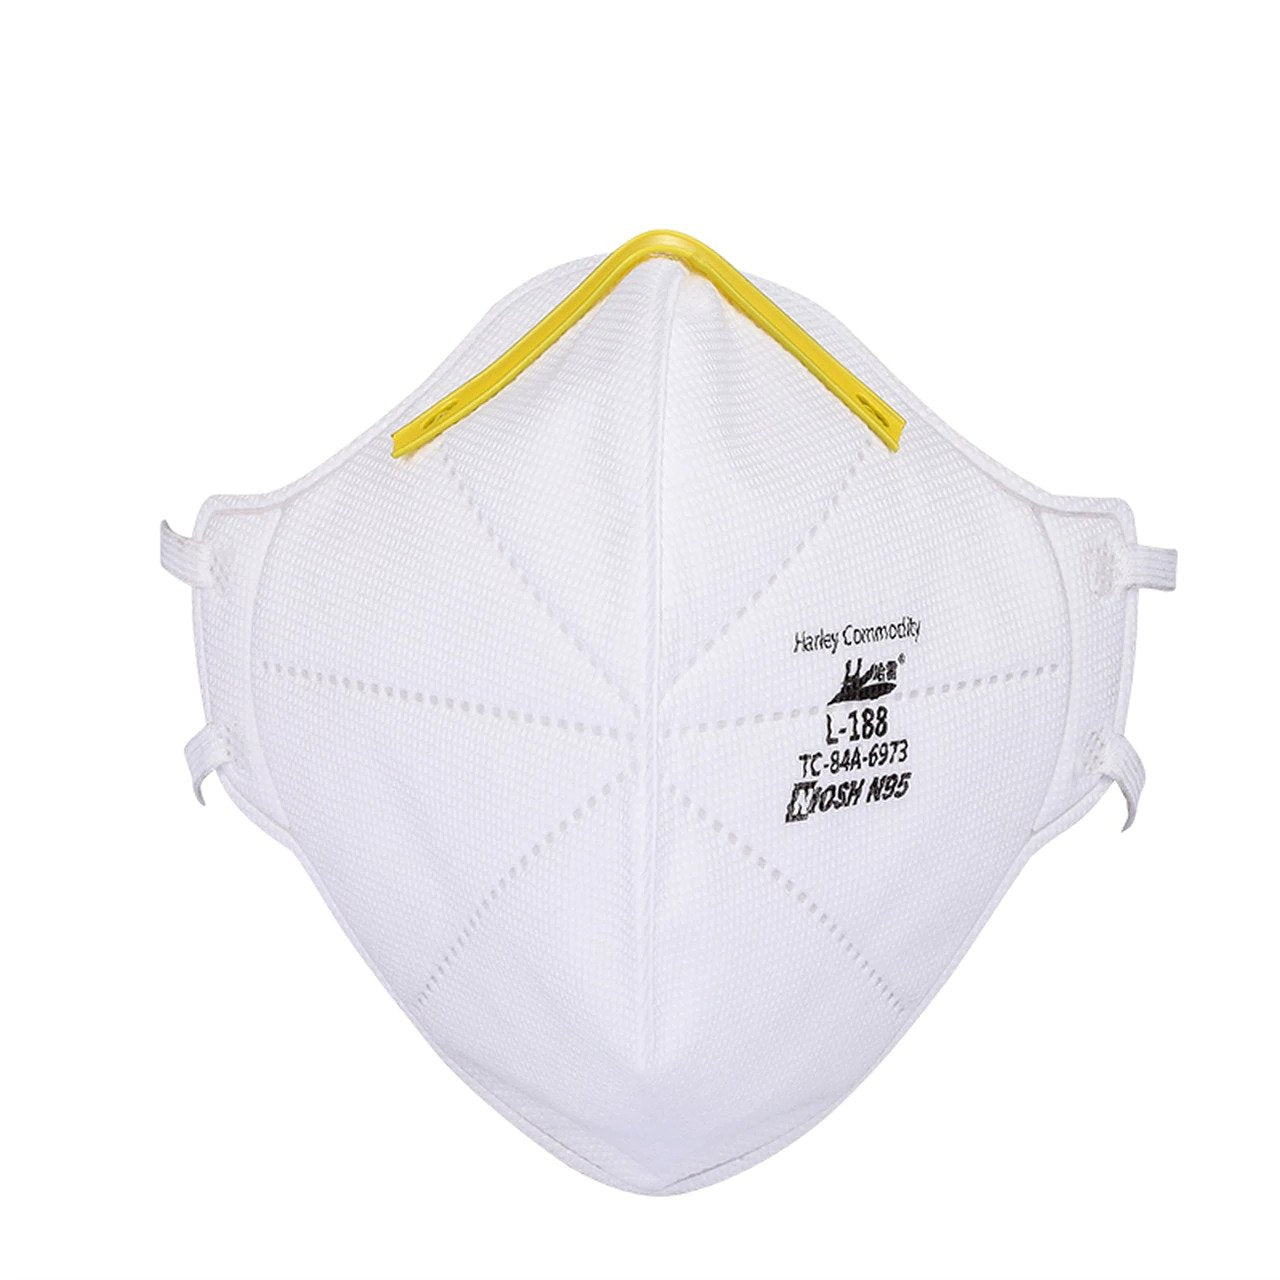 Harley N95 Respirator Face Mask - Model L-188 - NIOSH Approved